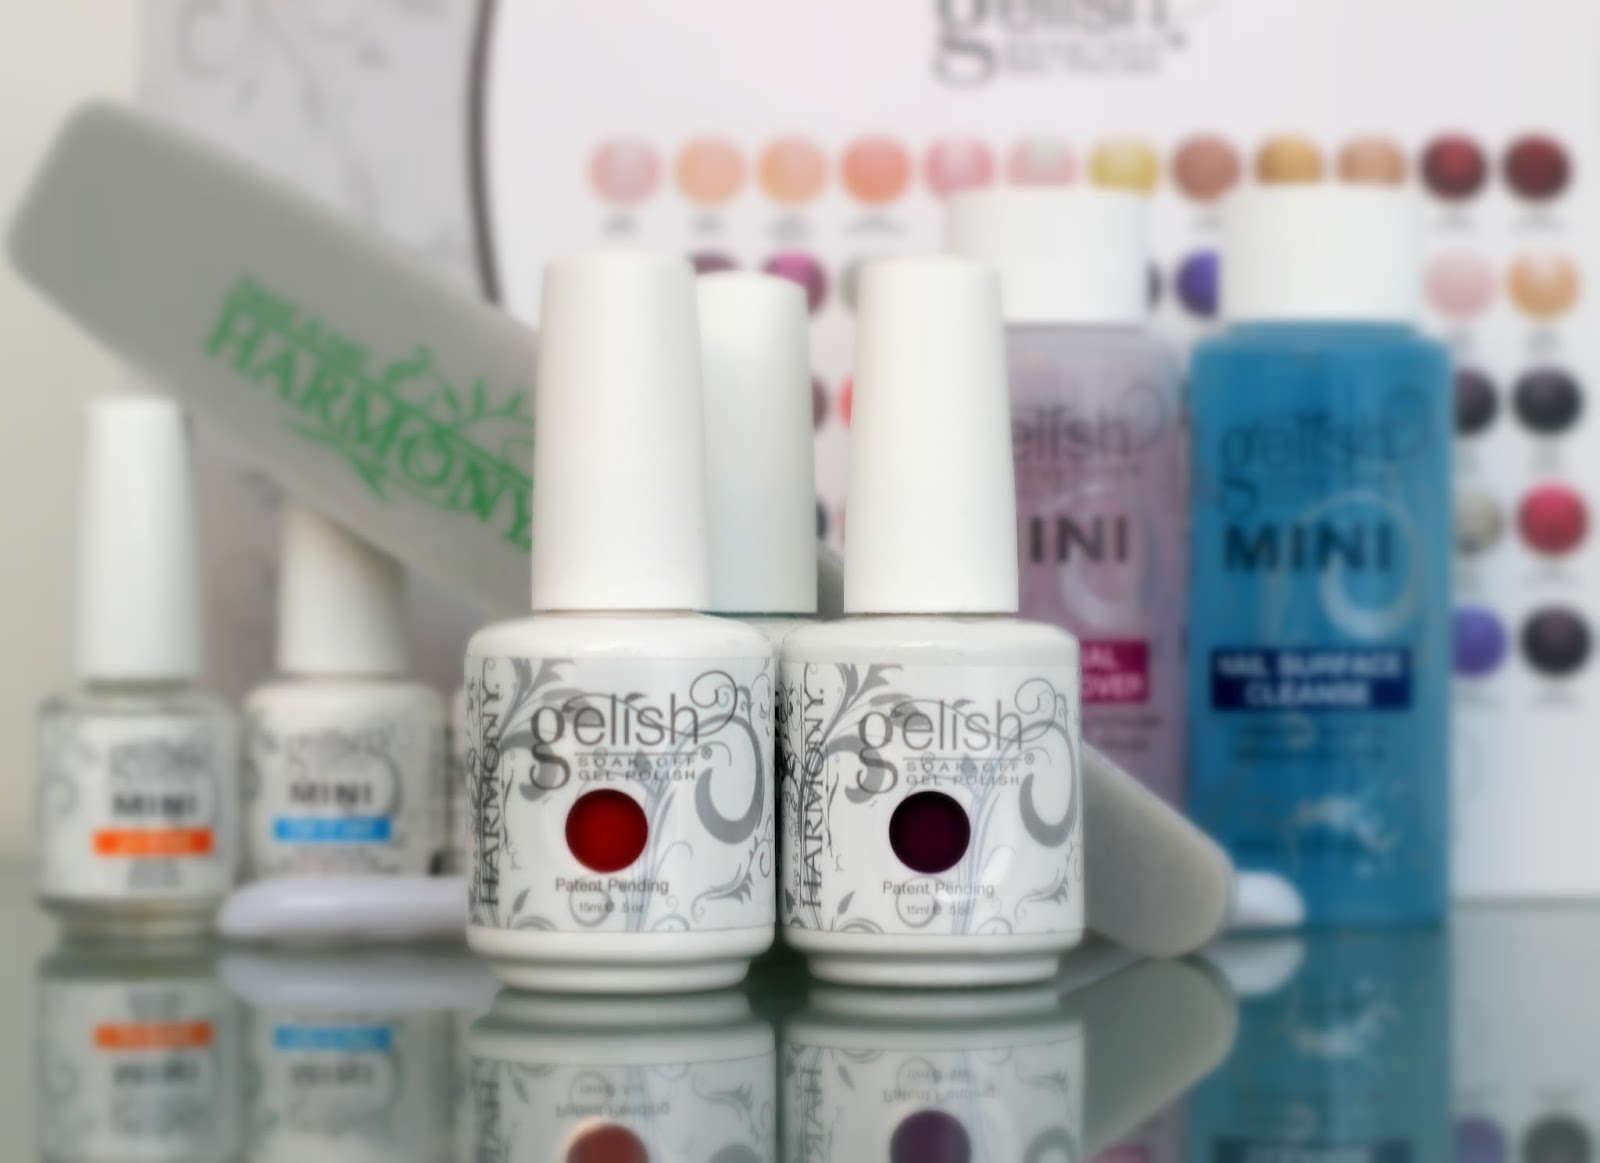 Gelish Brand Review